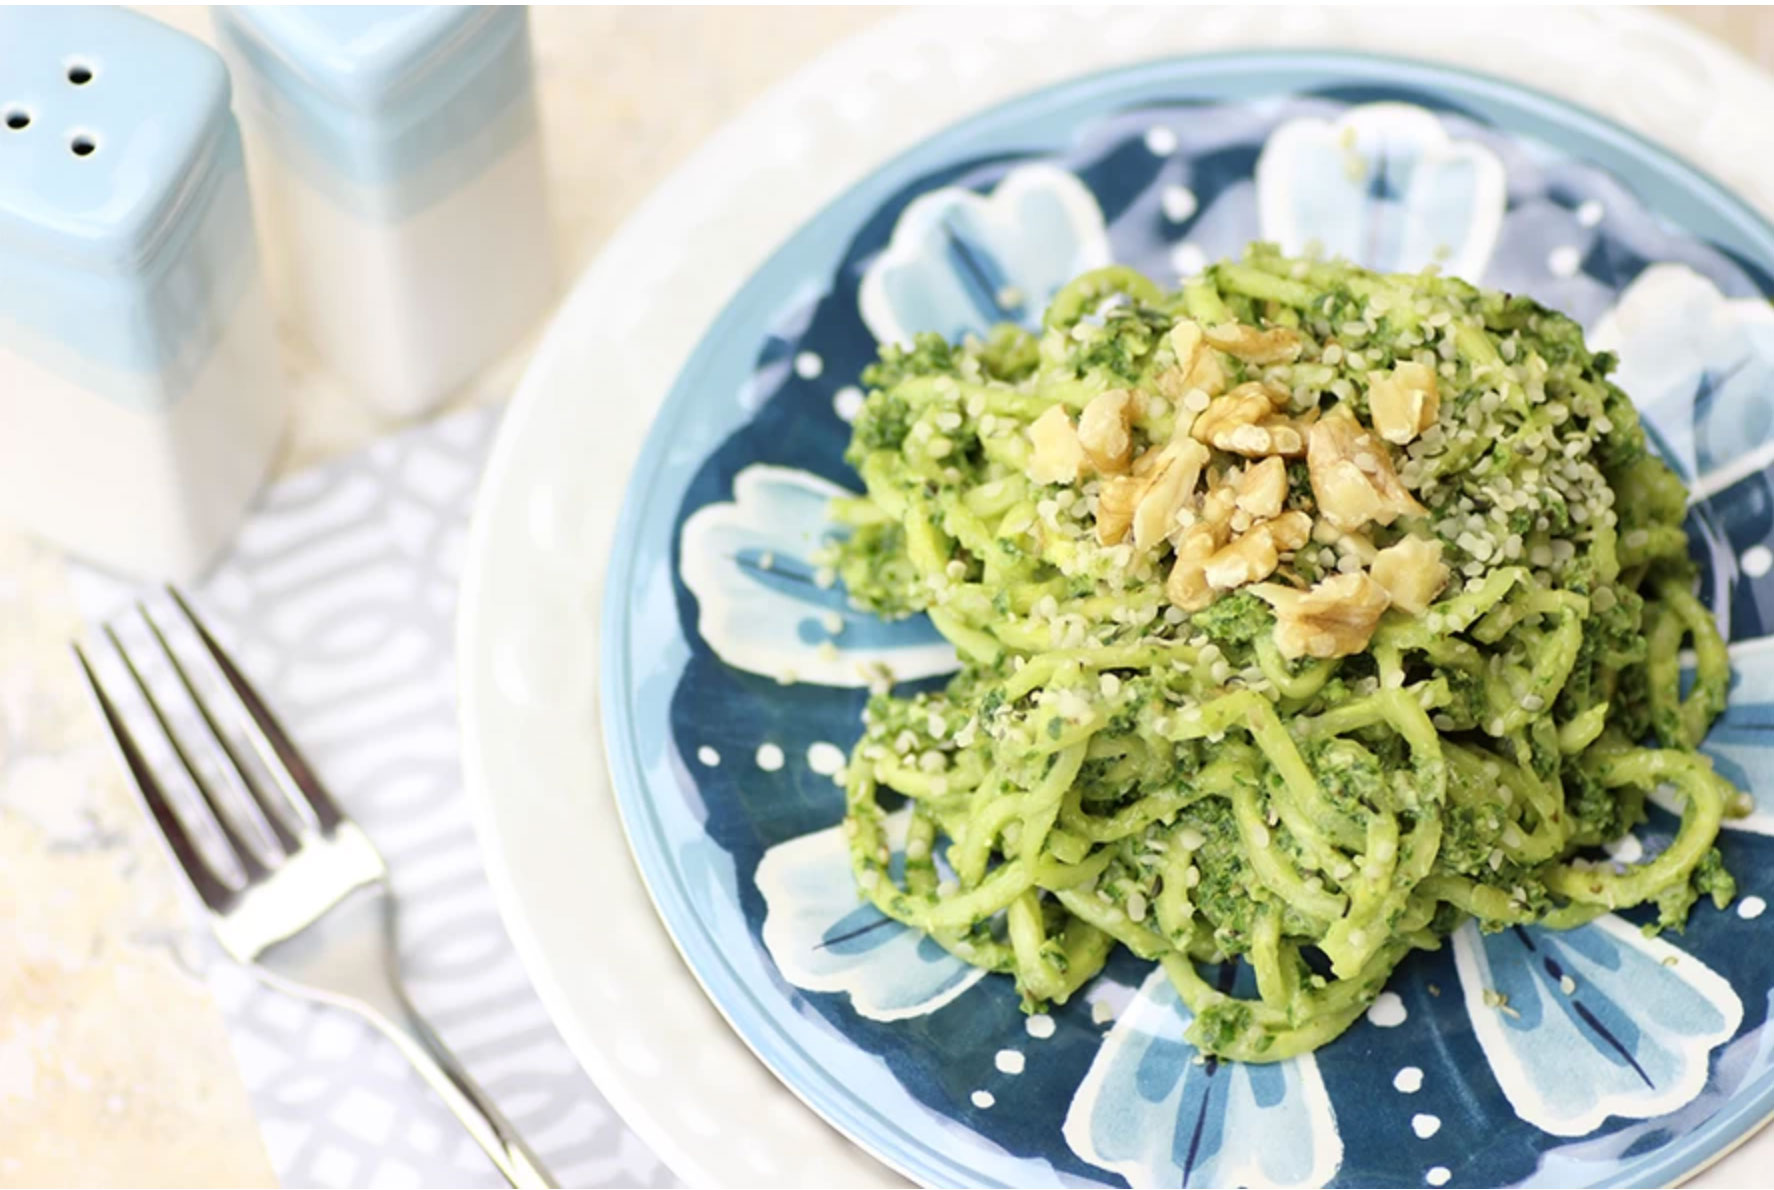 Zucchini Noodles with Spinach Pesto